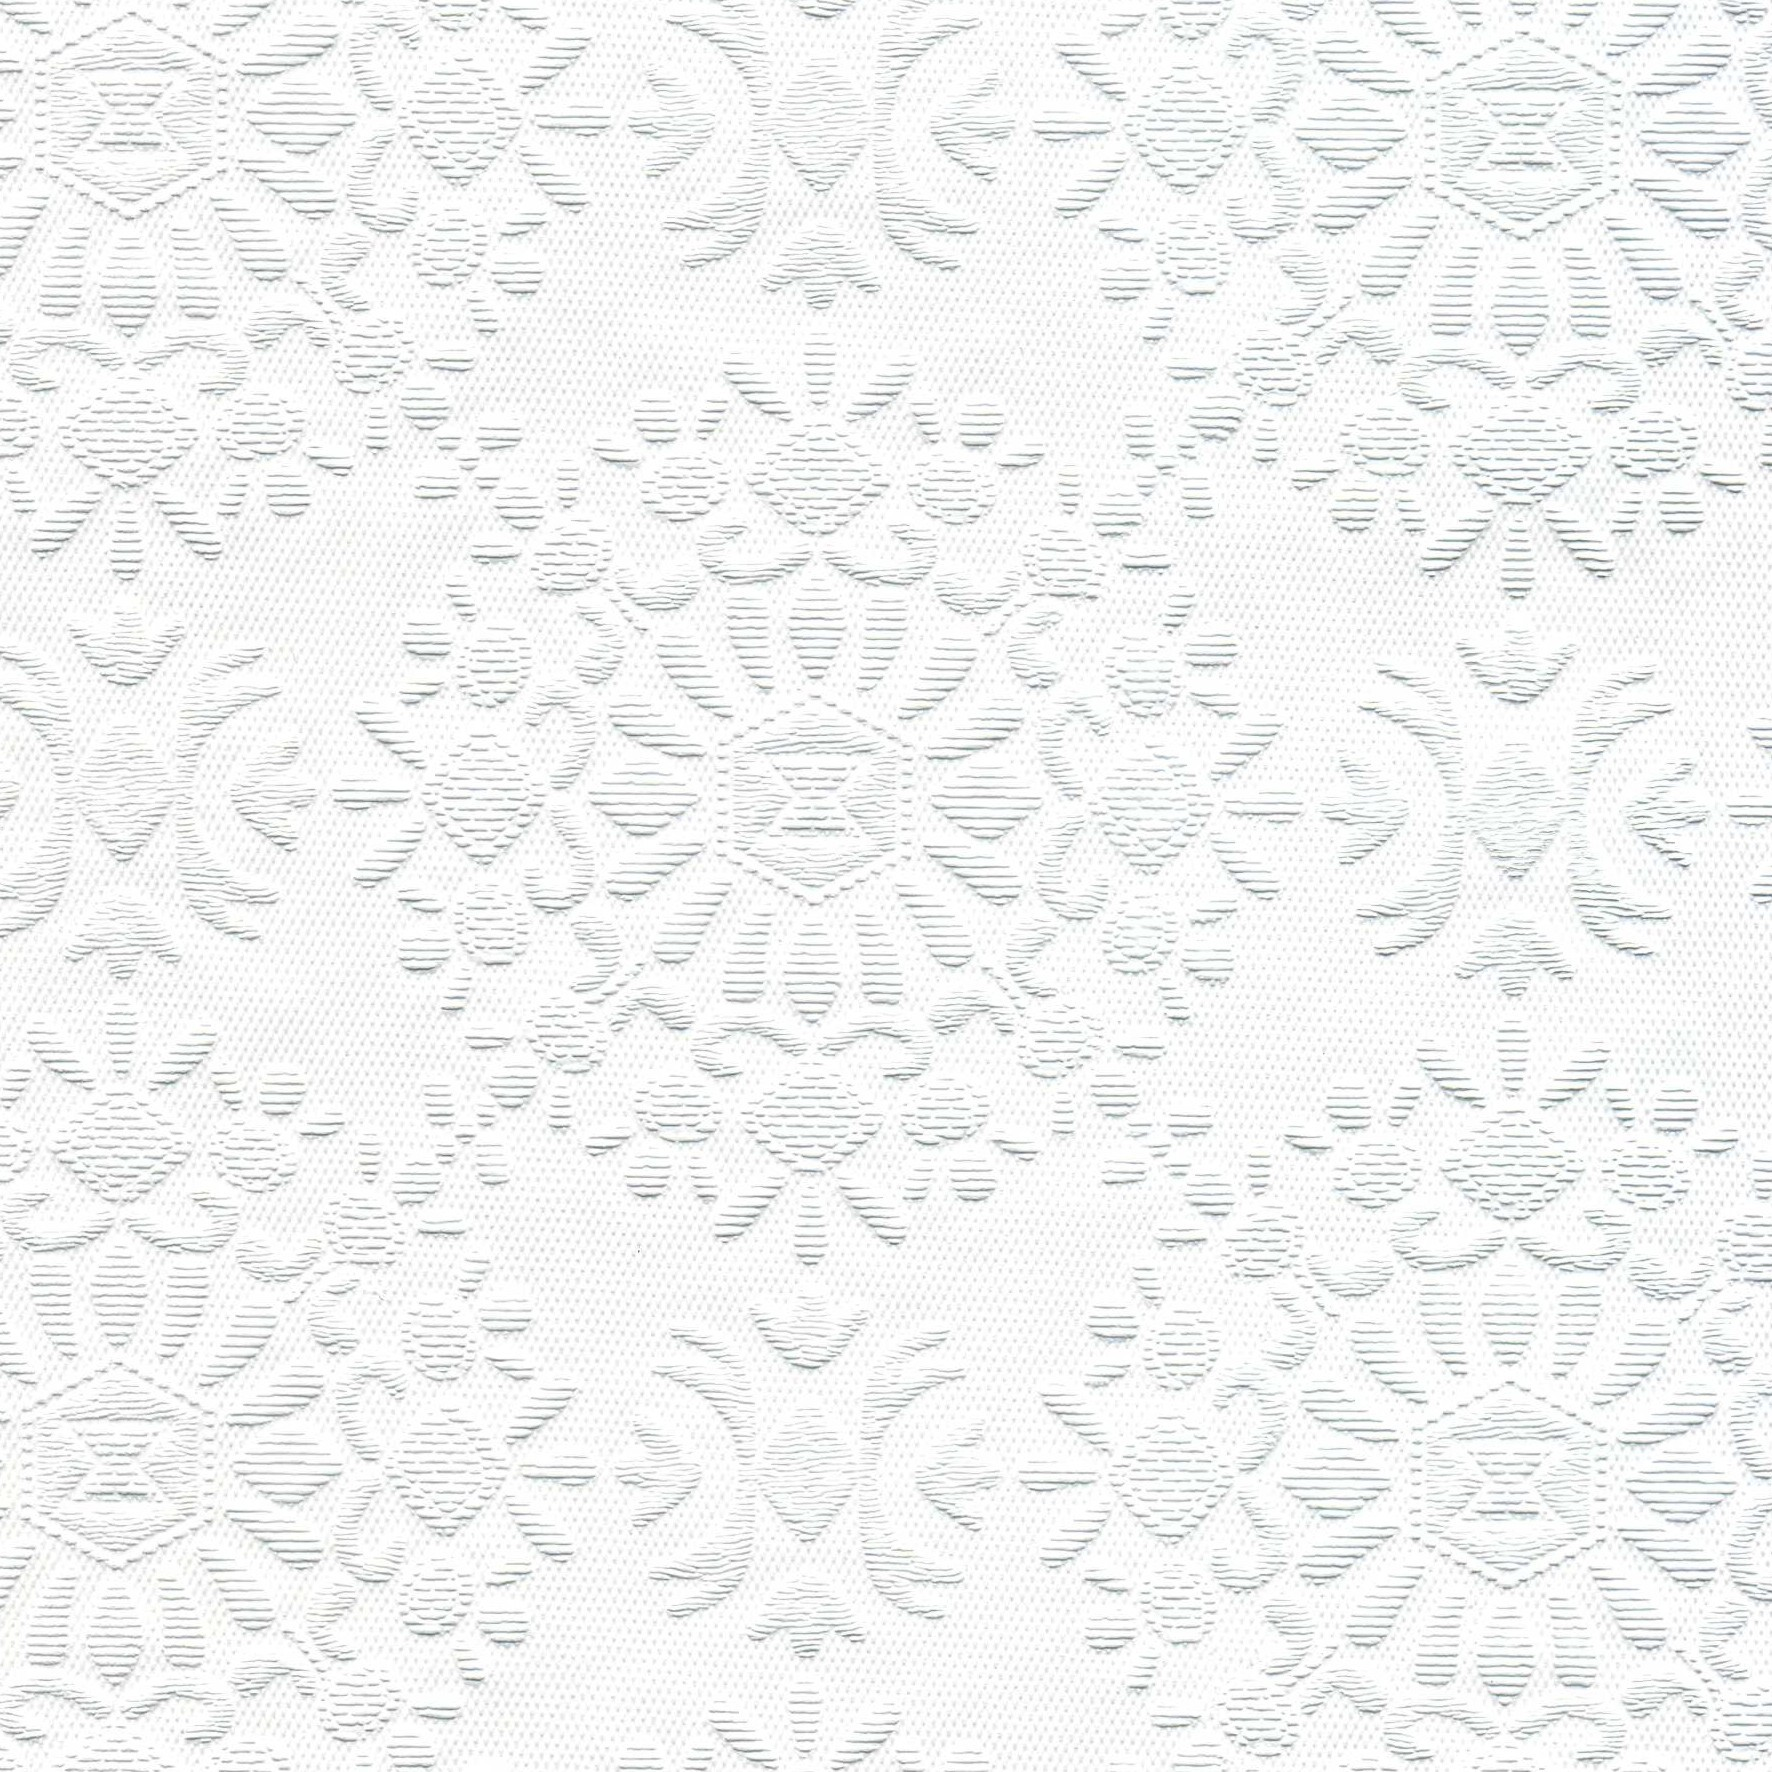 Gypsum tile high quality gypsum tile manufacturer from taiwan our products are made of an incombustible gypsum the regular gypsum ceiling tiles which contains gypsum plaster a high quality product that is free of dailygadgetfo Images